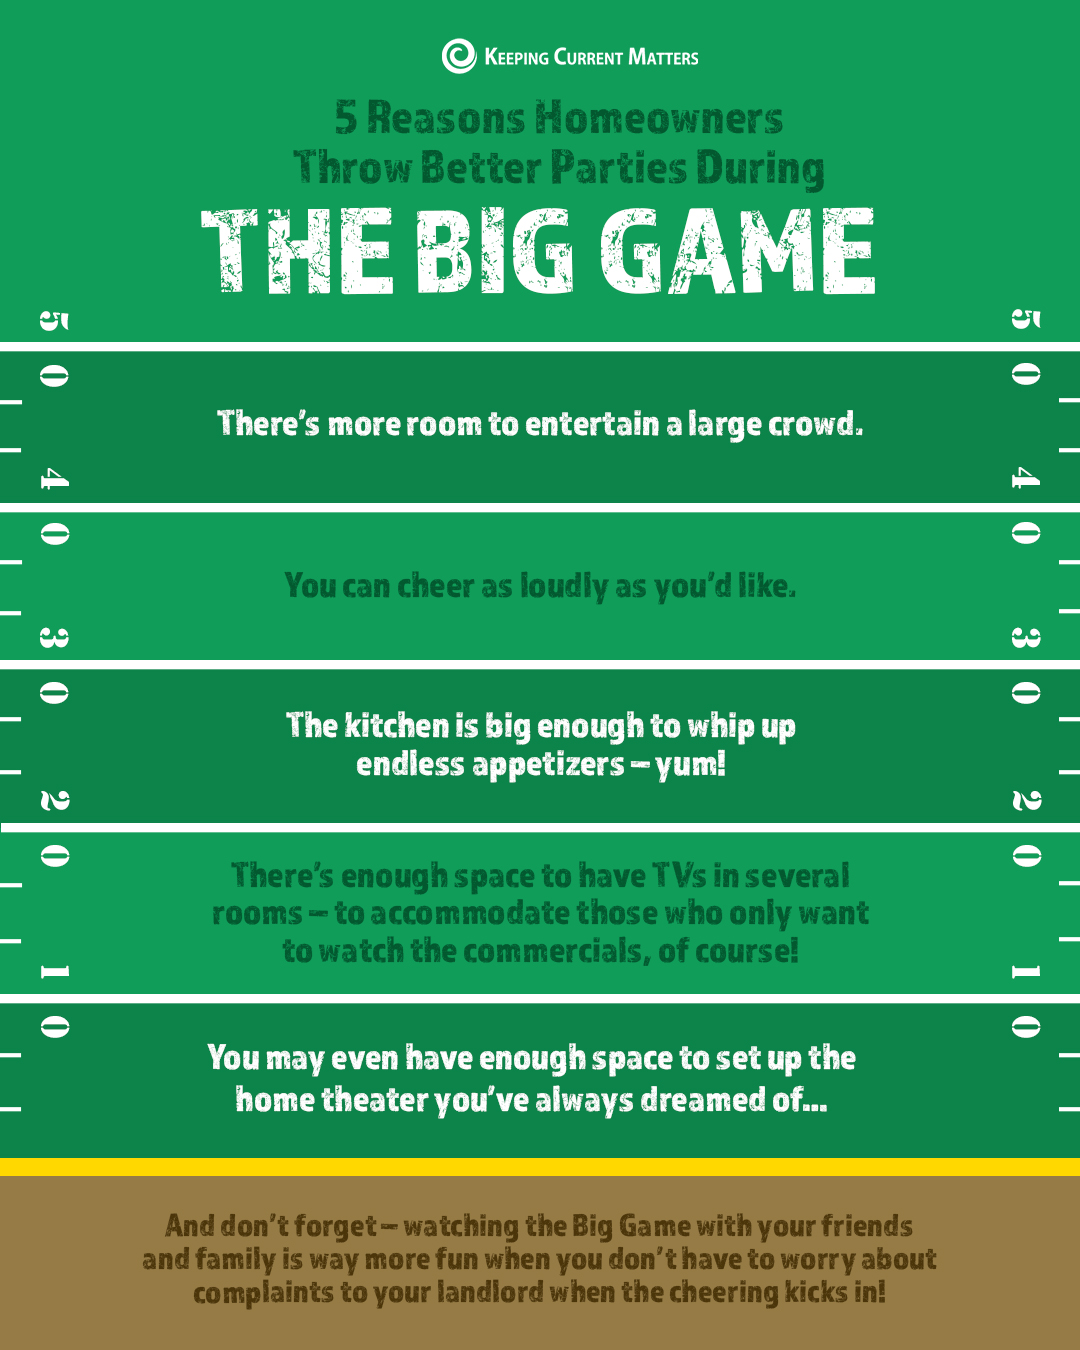 5 Reasons Homeowners Throw Better Parties During the Big Game [INFOGRAPHIC] | Keeping Current Matters